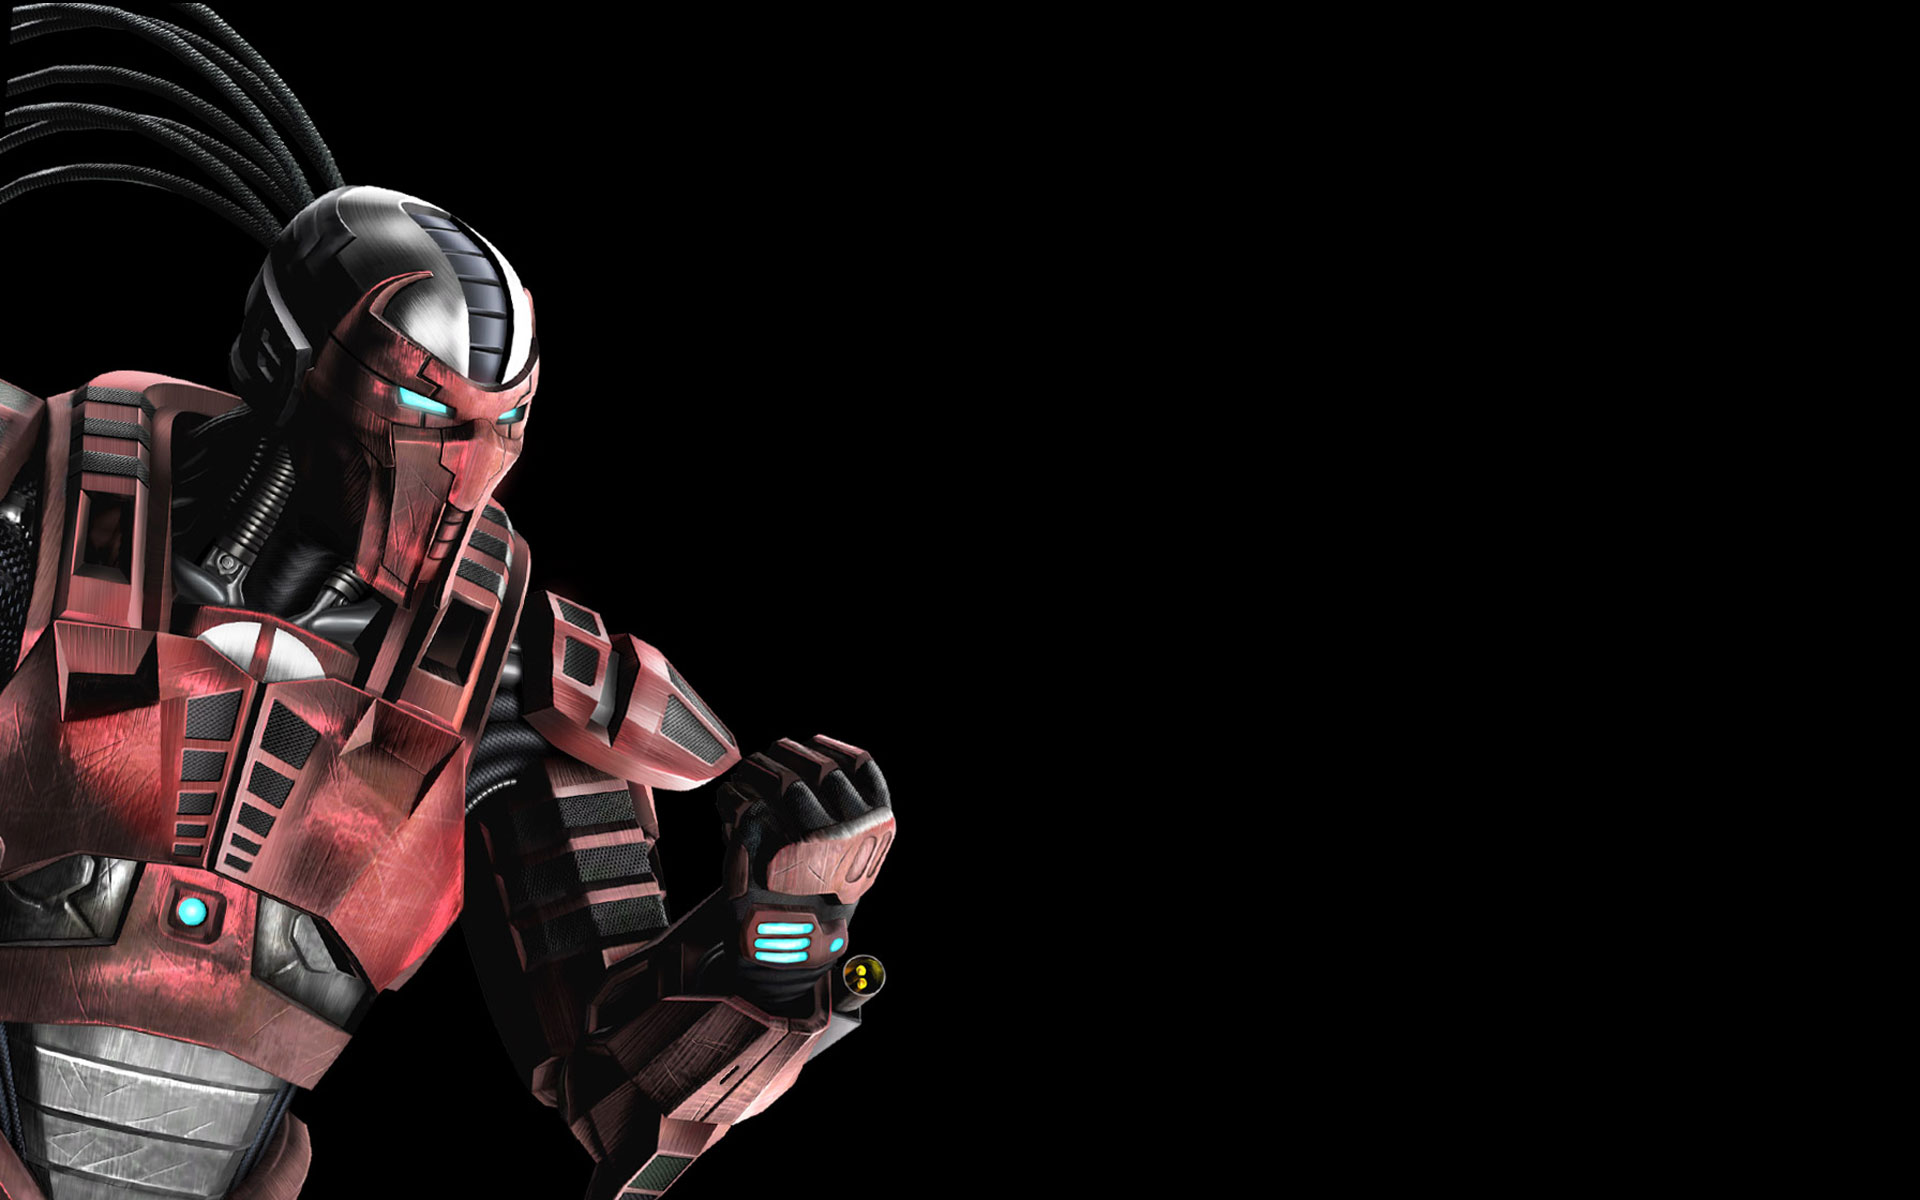 Games Wallpapers   Mortal Kombat 9 Sektor wallpaper 1920x1200